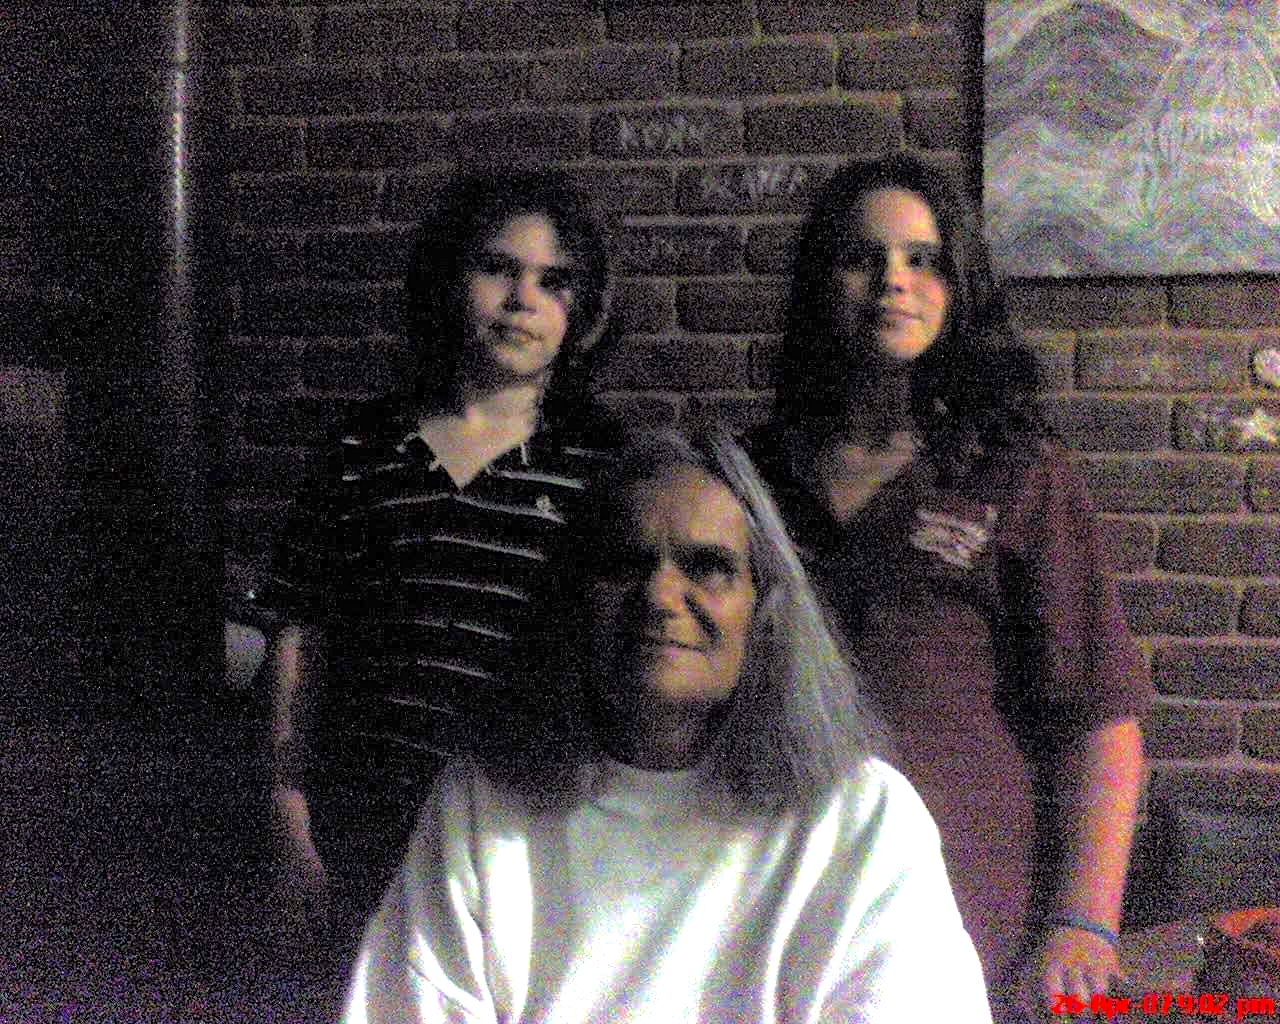 Two young people standing behind an older woman against a brick wall with a picture frame hanging on it. All three people are smiling.